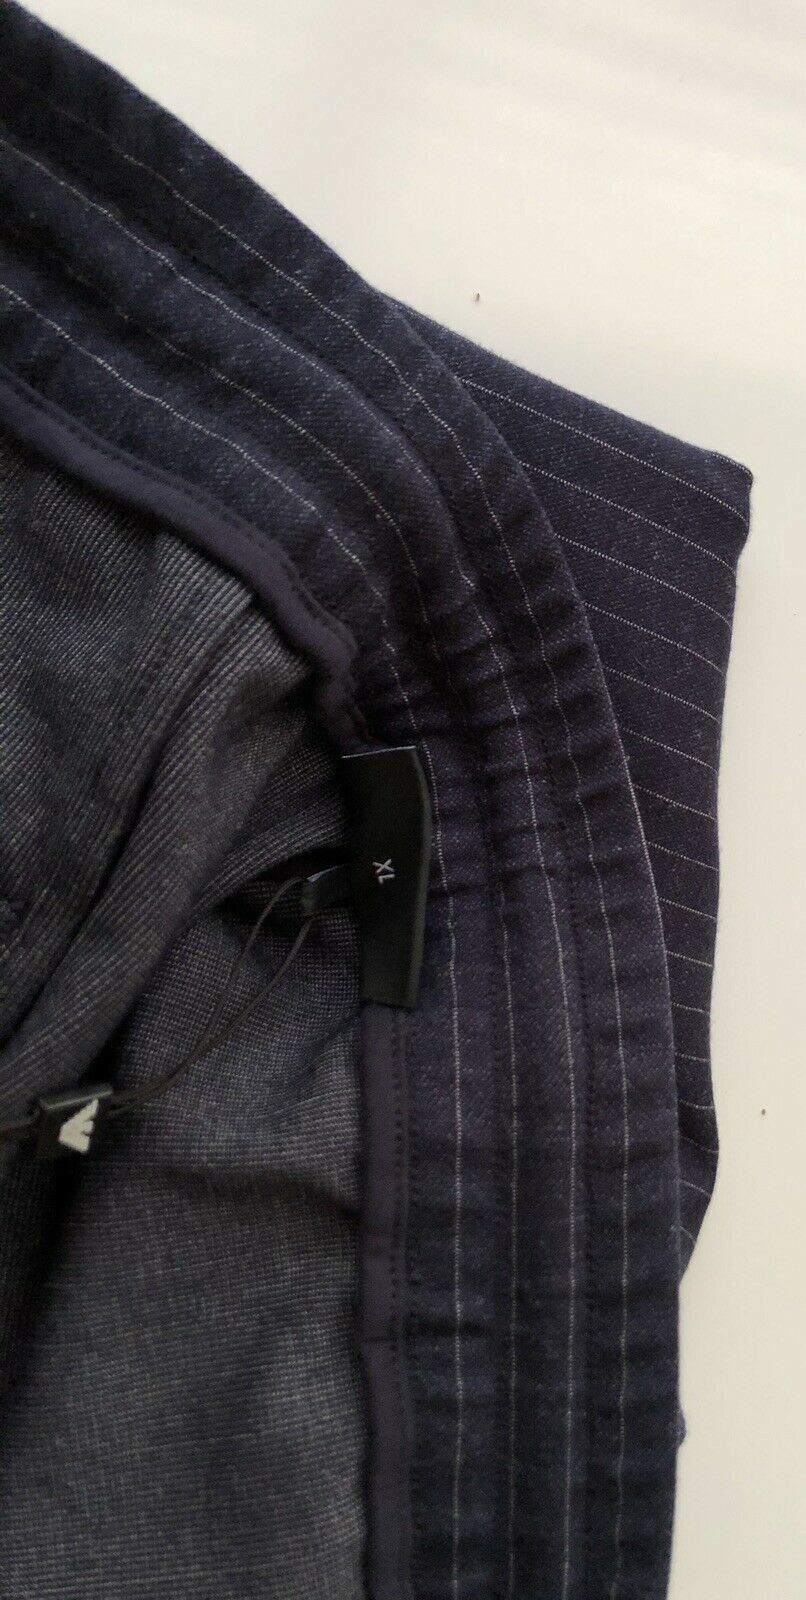 NWT $325 Emporio Armani Blue Mens Casual Pants Size XL 6Z1P81